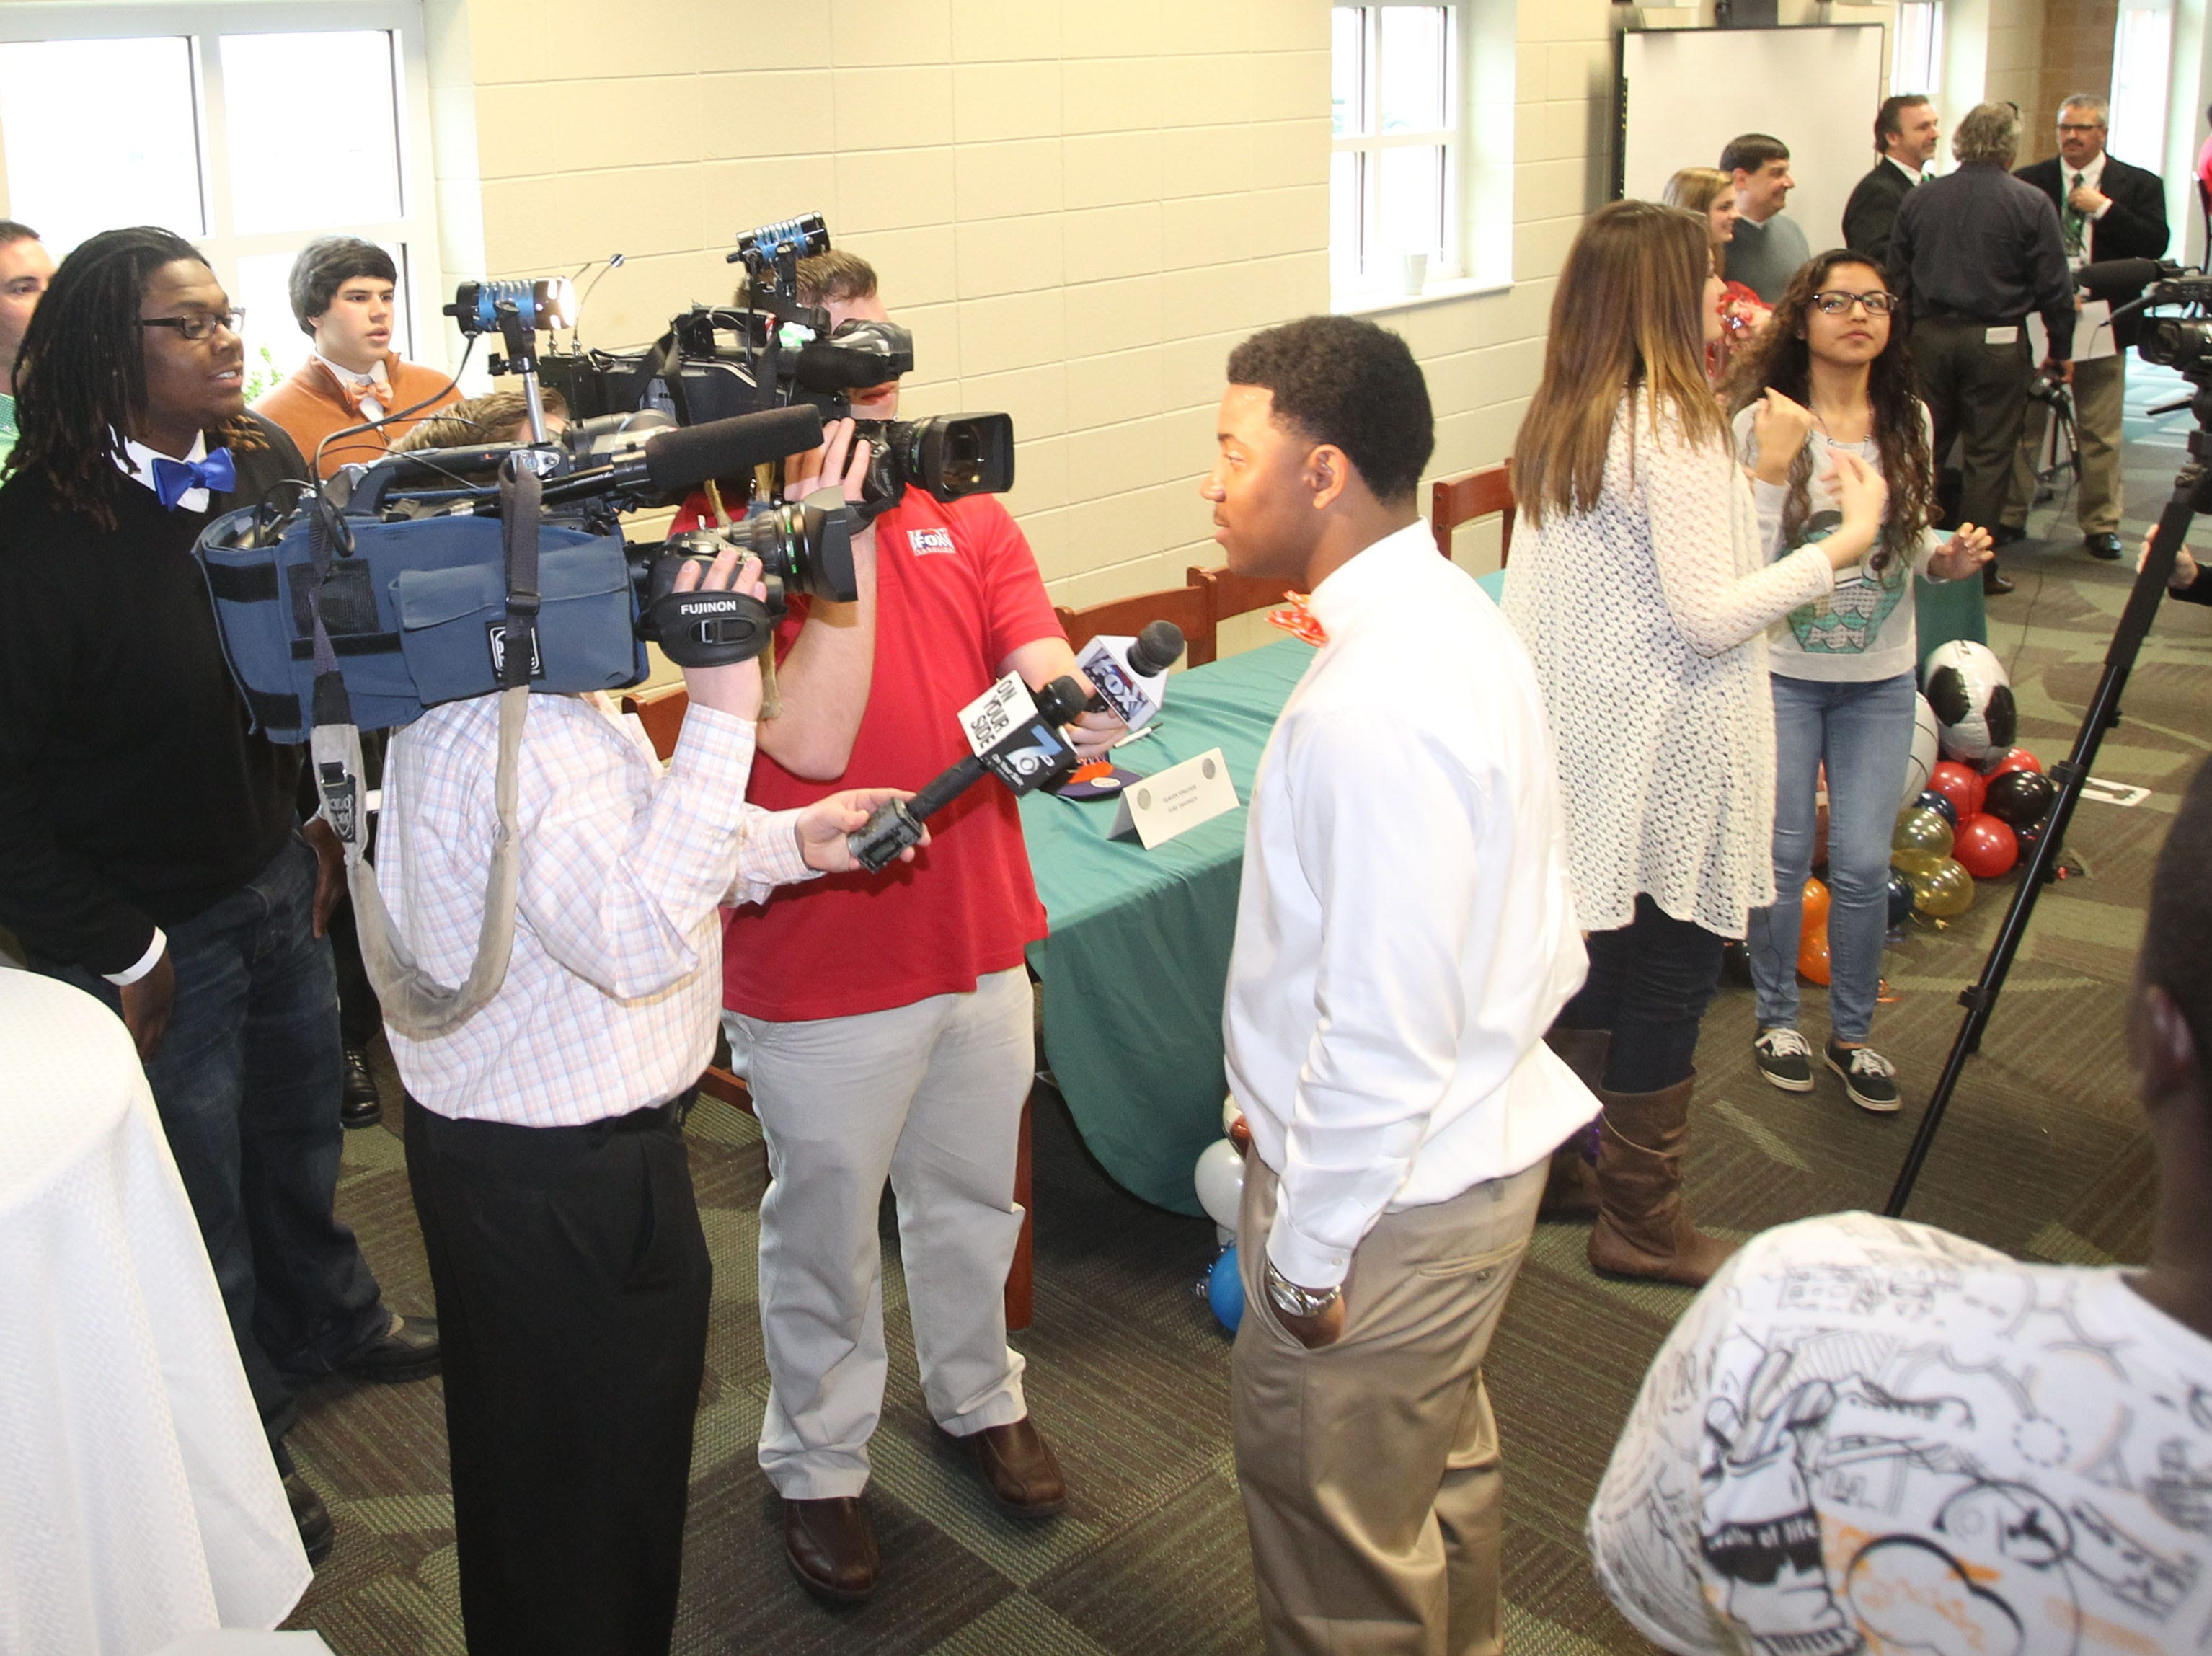 C.J. Fuller, center, participates in National Signing Day at Easley High School during his senior year.